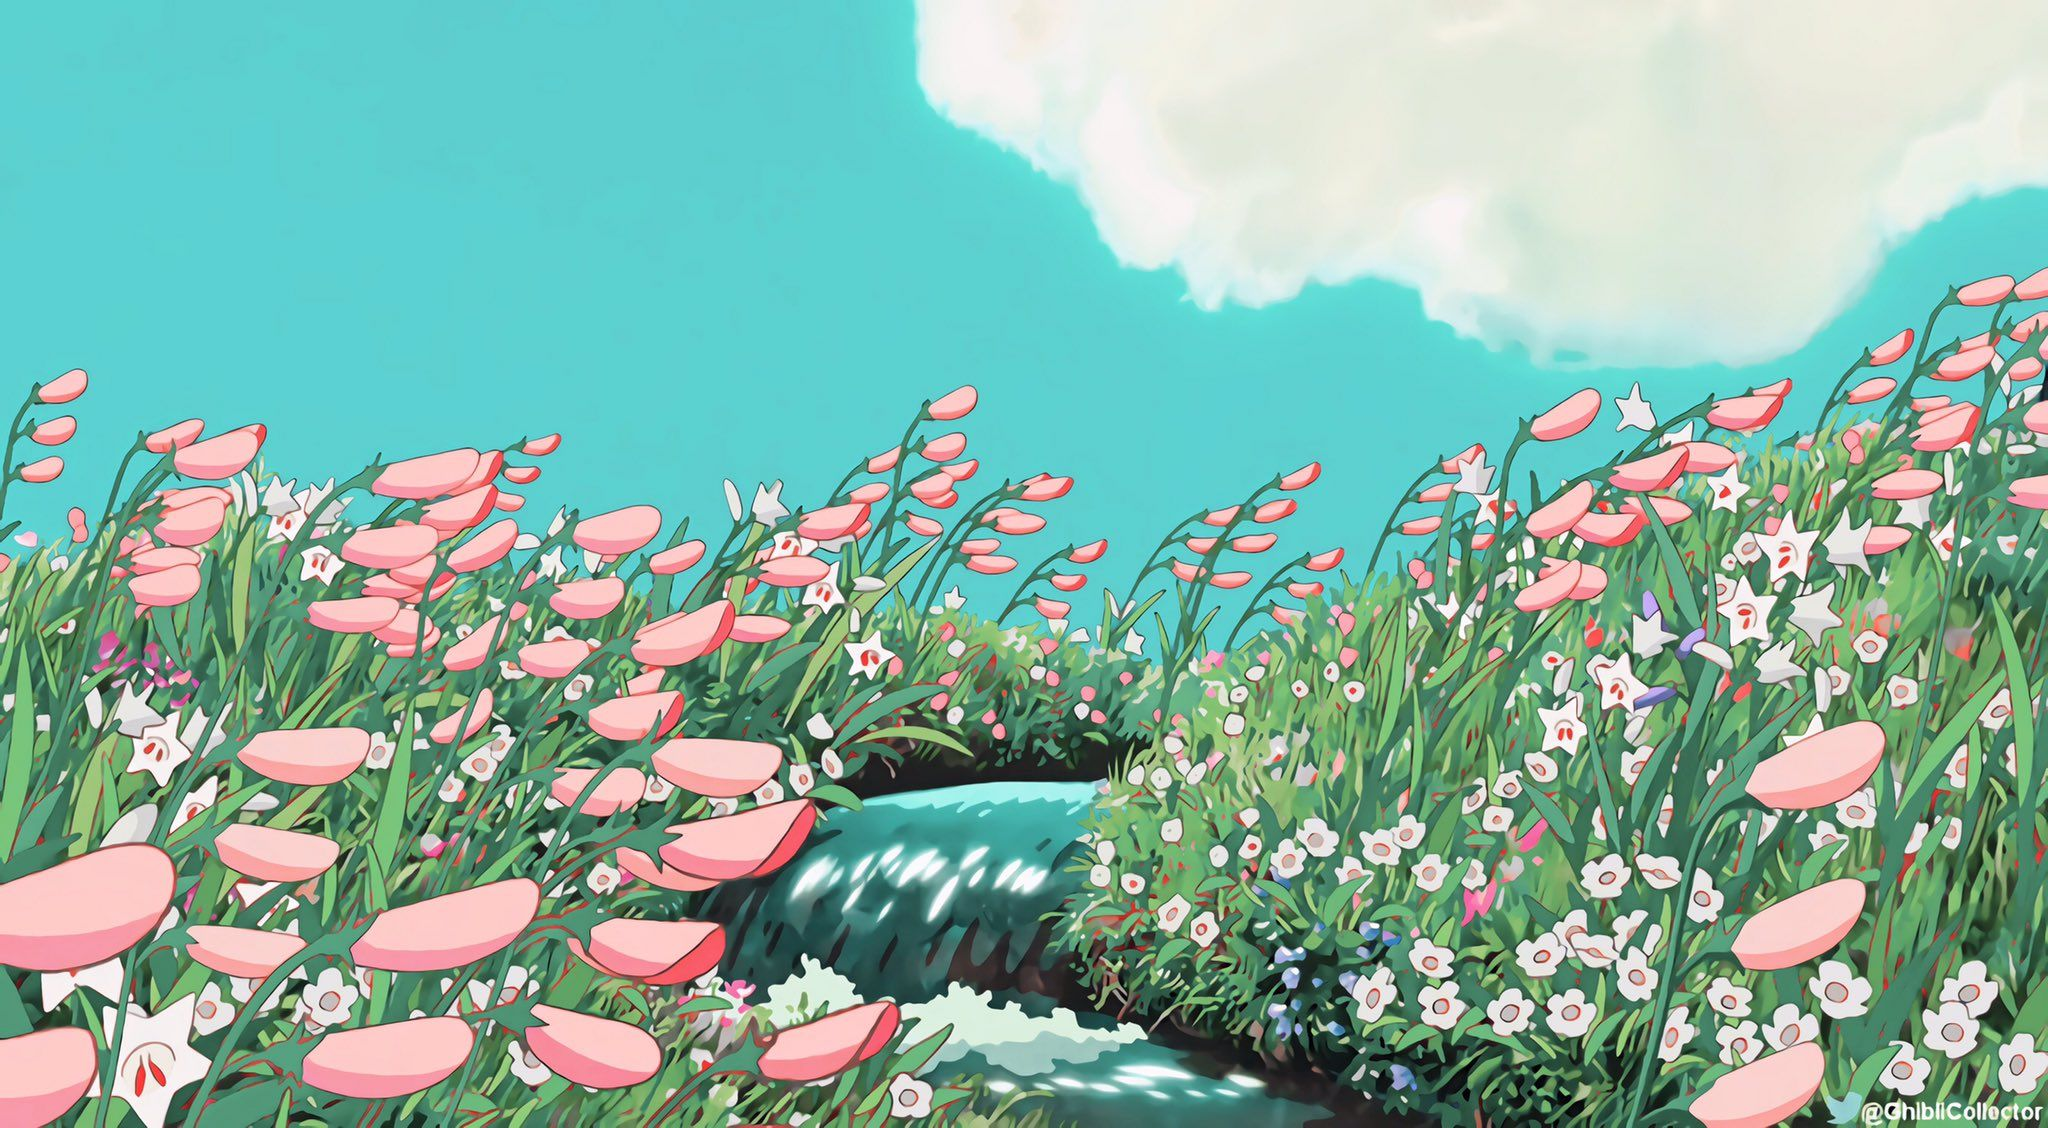 Account Suspended In 2020 Ghibli Artwork Anime Scenery Wallpaper Anime Scenery